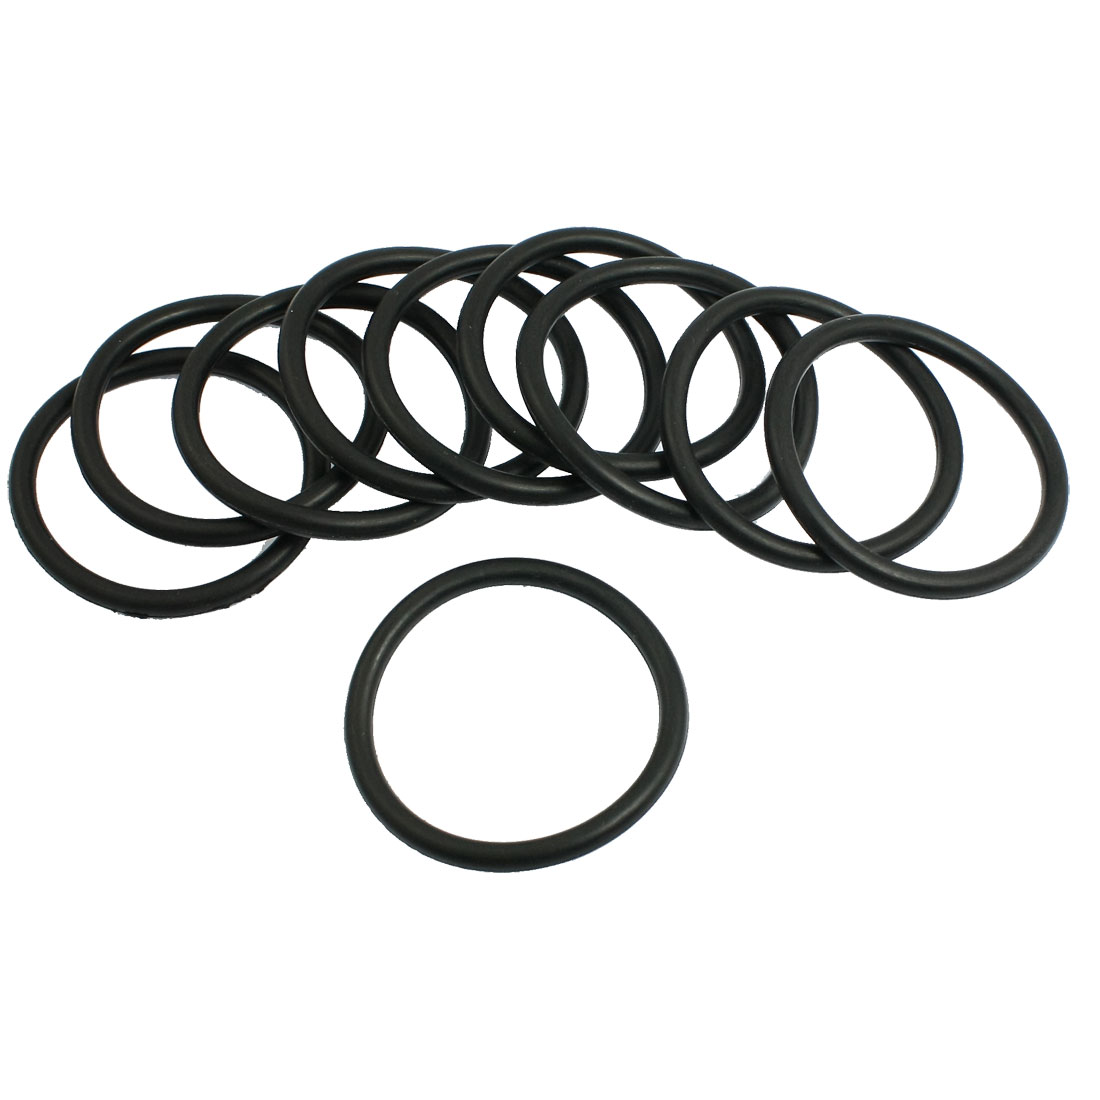 5mm x 58mm Nitrile Rubber O Type Sealing Ring Gasket Grommets Black 10Pcs